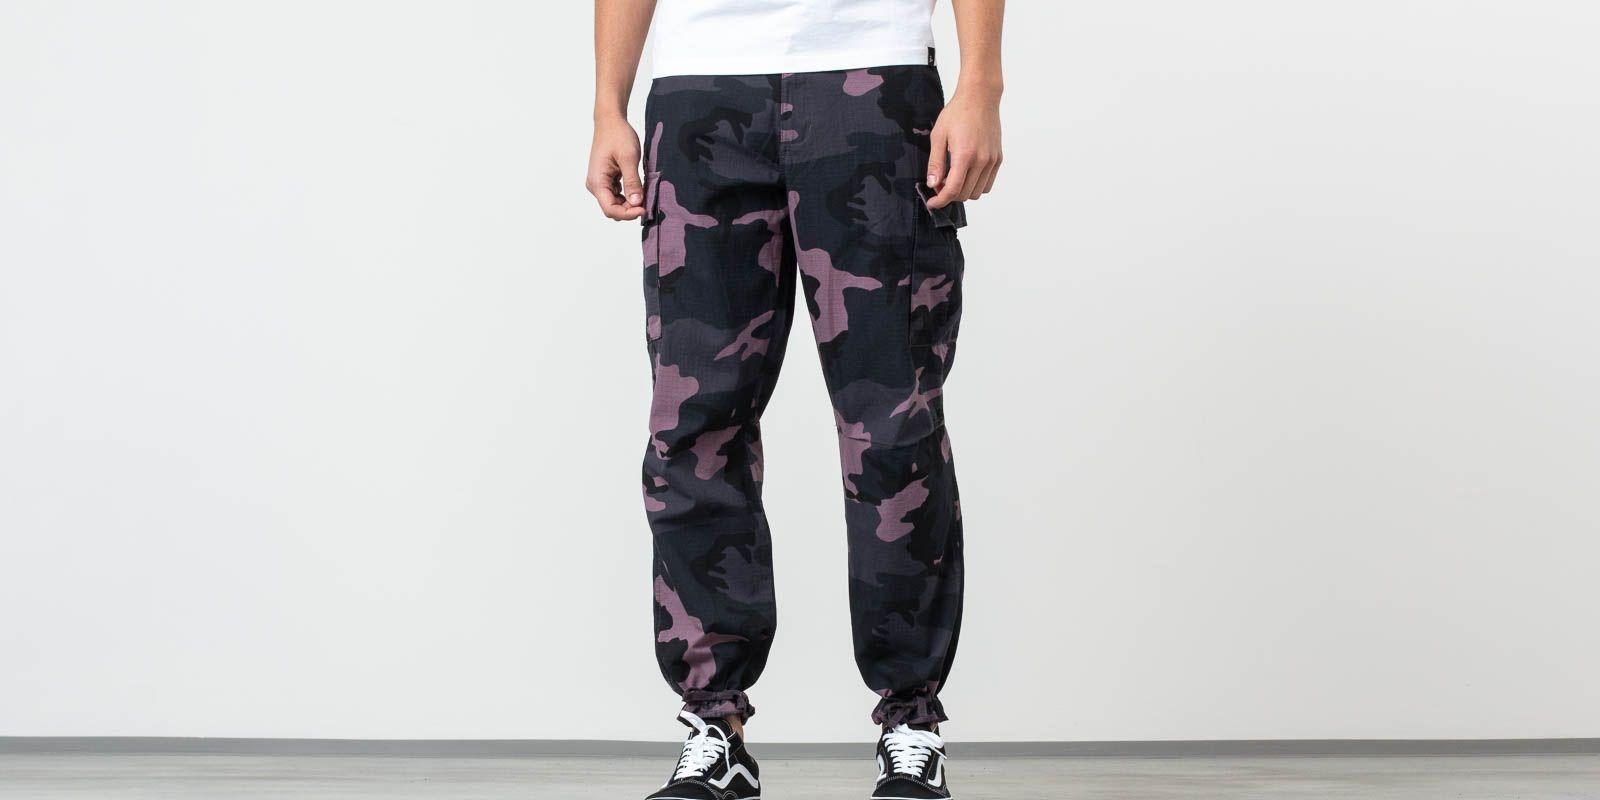 cdd8369d96874 Vans Depot Oversized Cargo Pant Black Plum Camo in Black for Men - Lyst